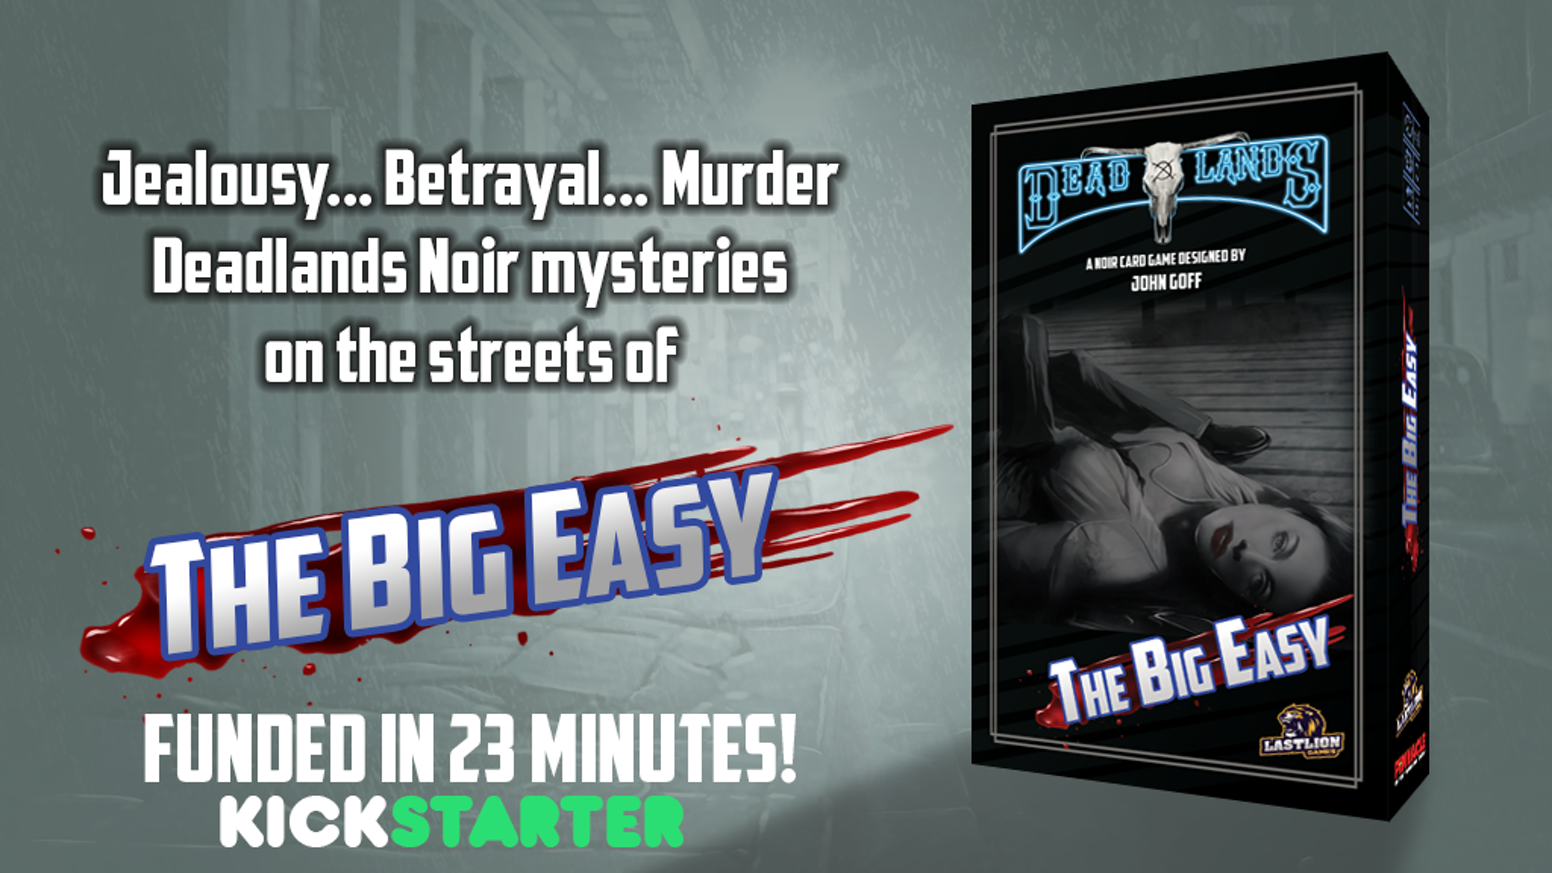 A standalone crime-solving card game for 2-4 players set in the world of Deadlands Noir.